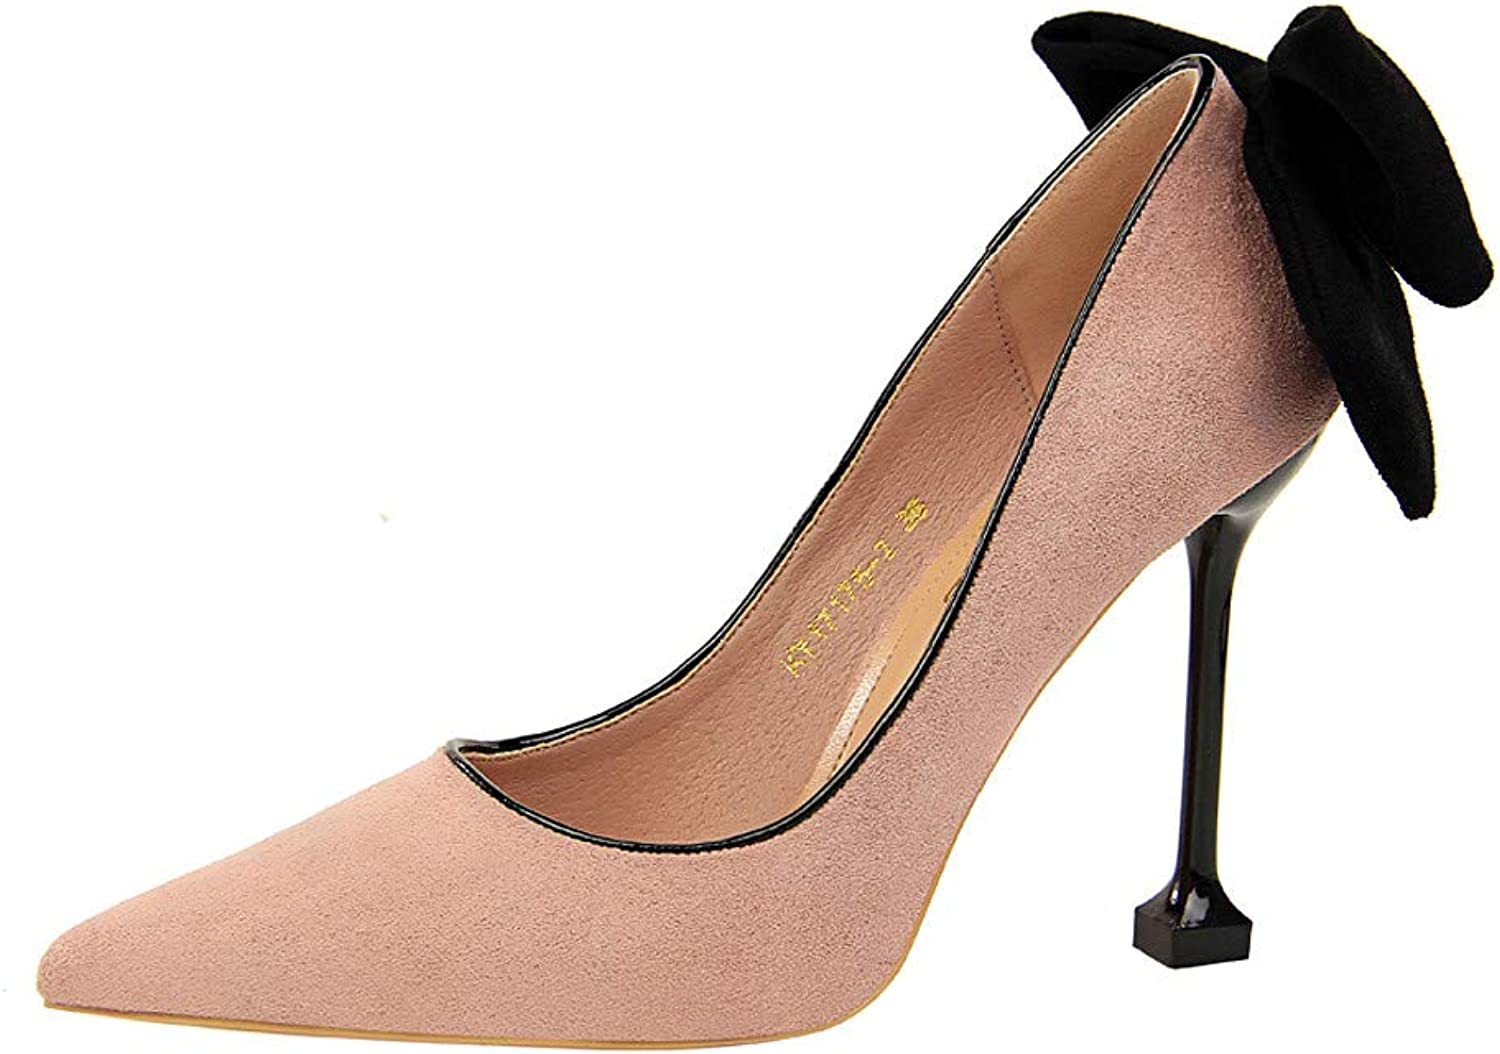 IINFINE Women Glossy Fresh colors Pointed Toe Heels Formal Dress Pumps shoes